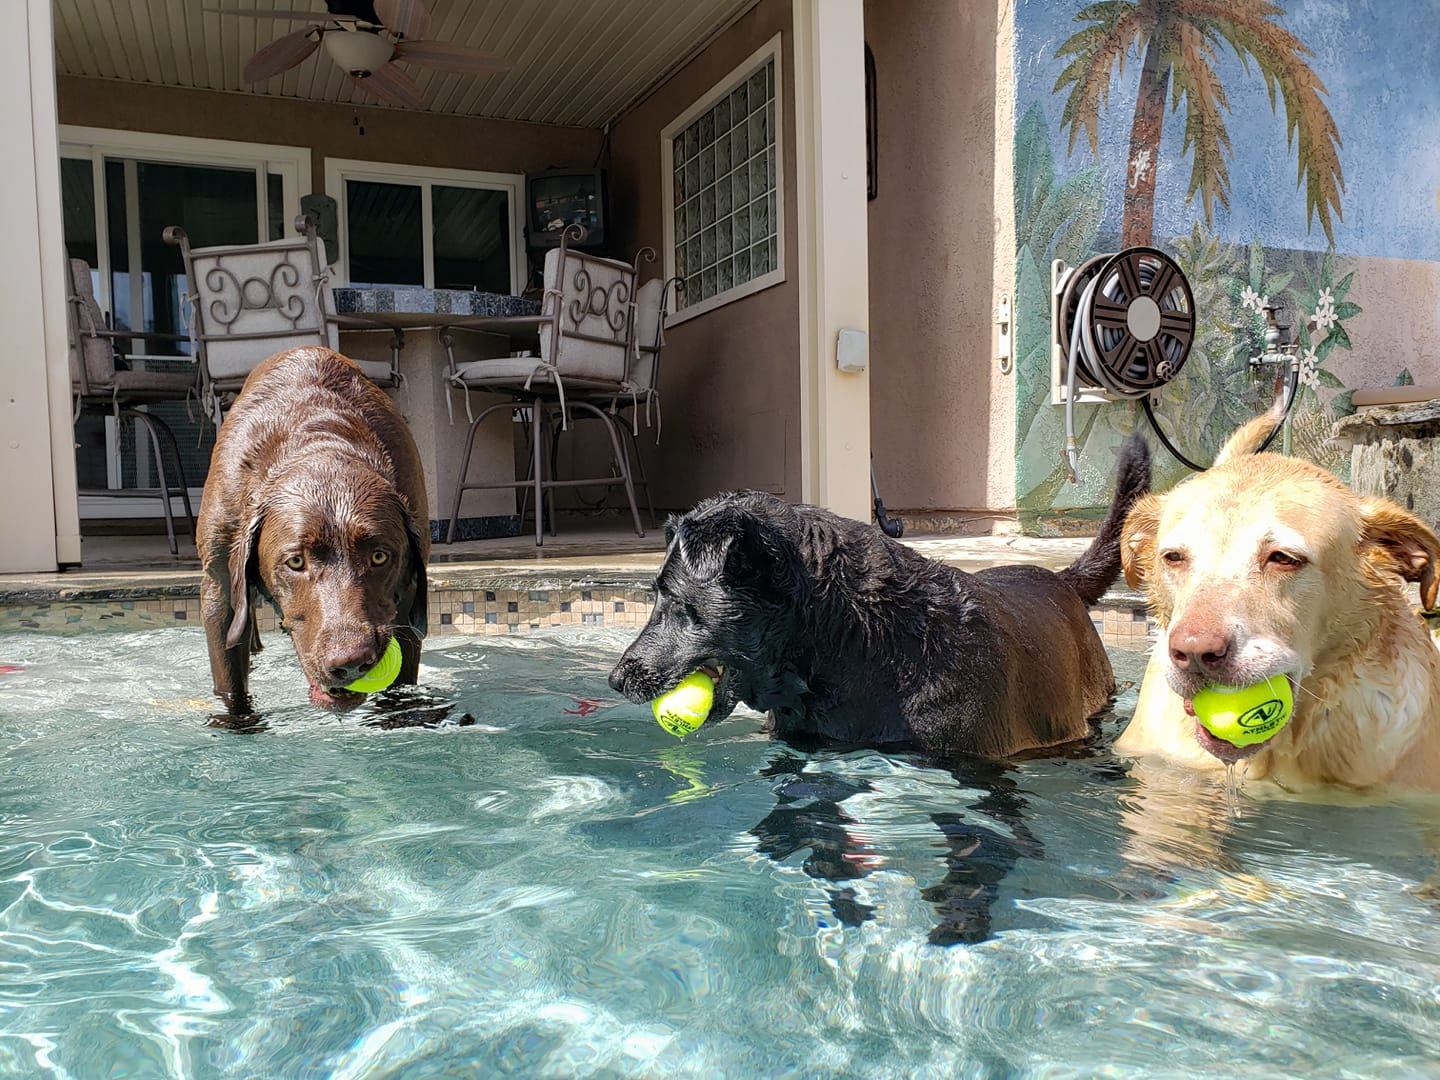 dogs in moval pool.jpg